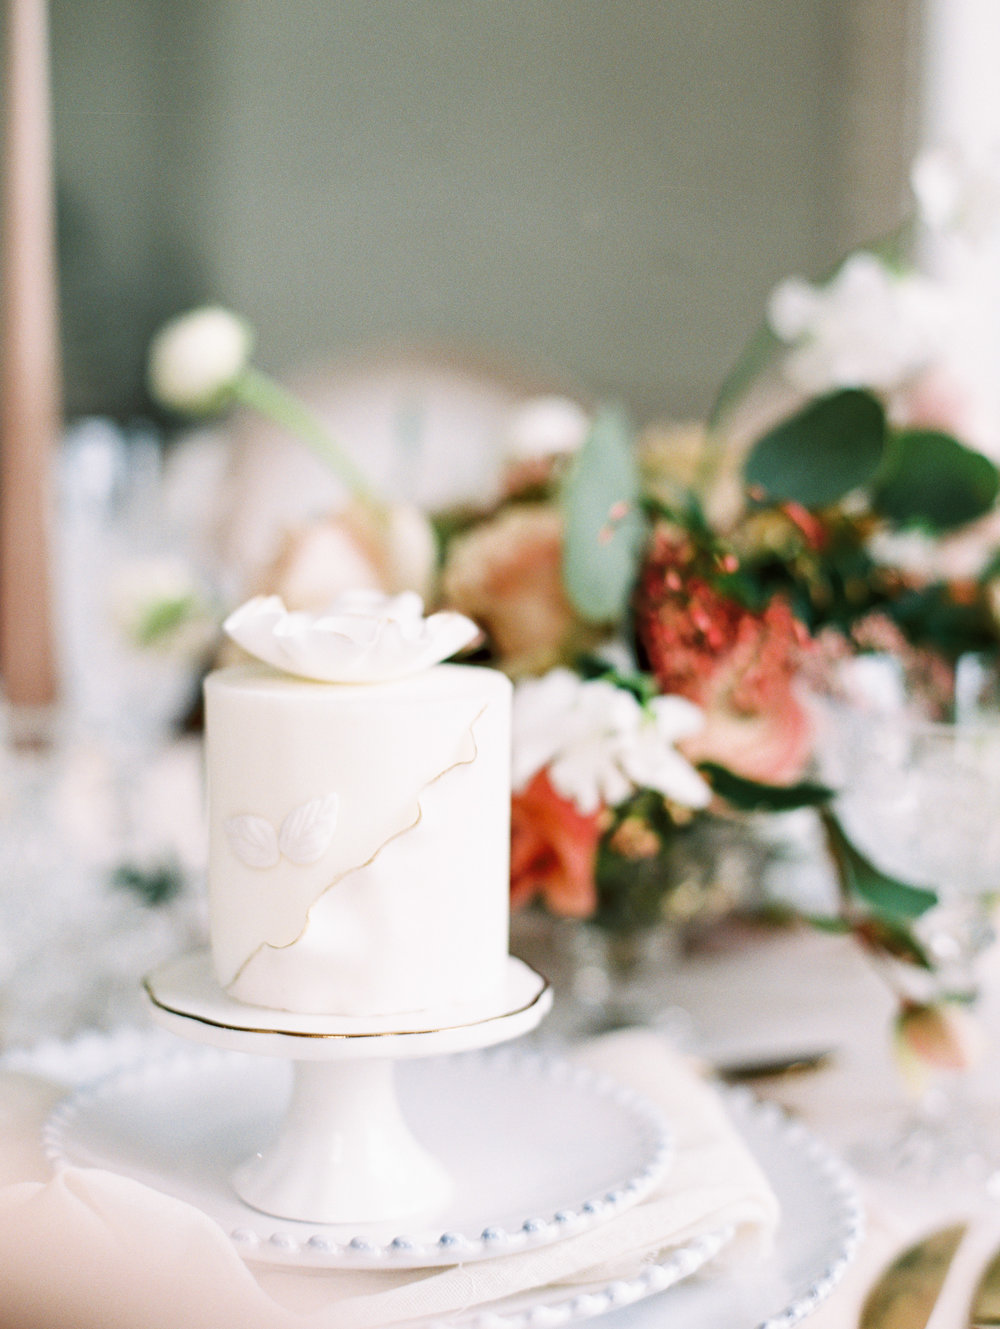 The Timeless Stylist-Elegant and Romantic Dinner Party Styling-Mini Cake Place Setting